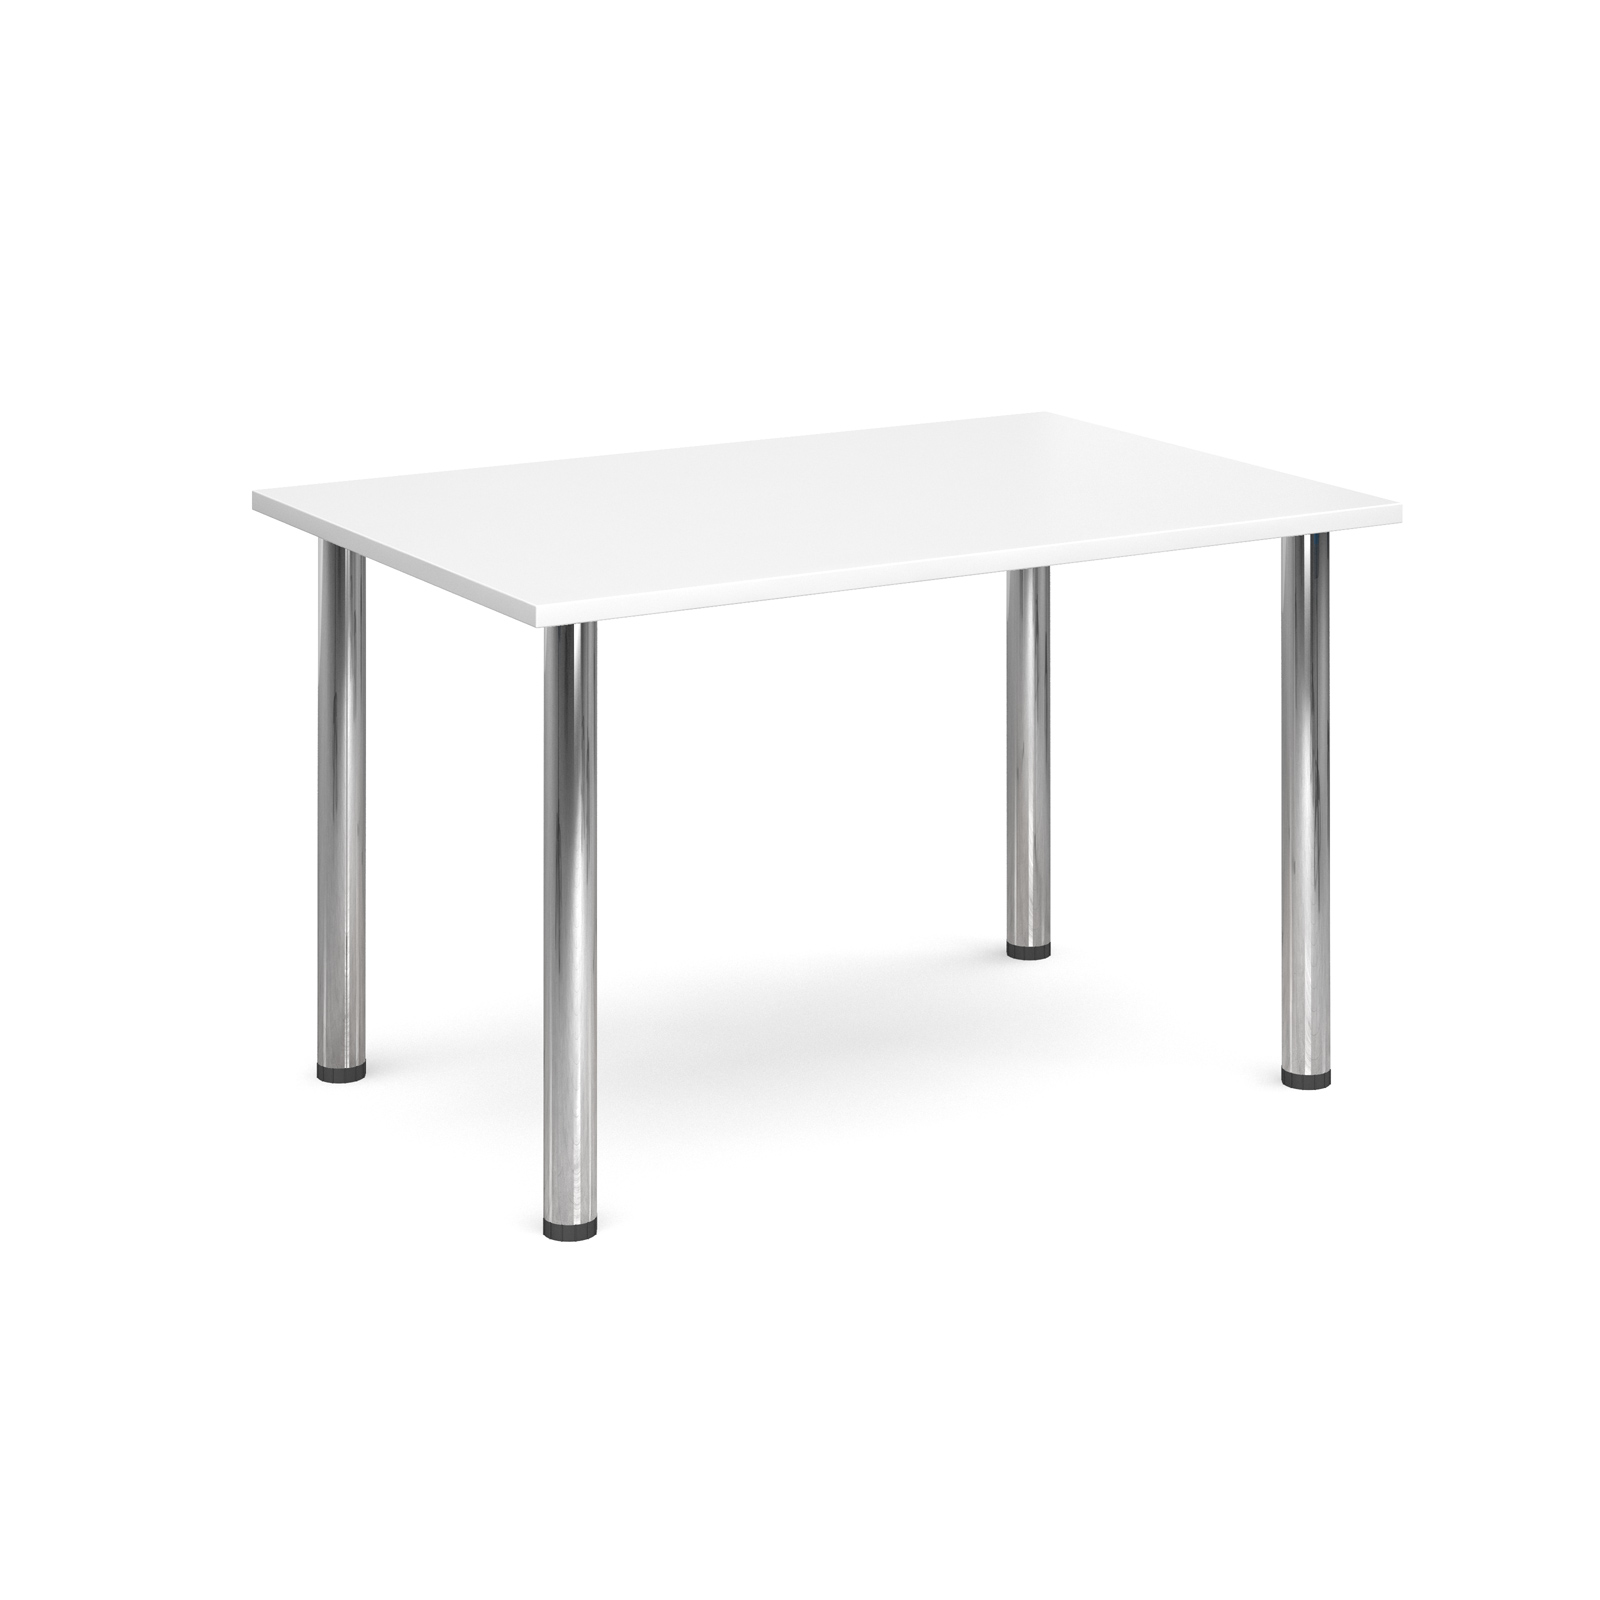 1300 Flexi table Chrome radial Legs-White